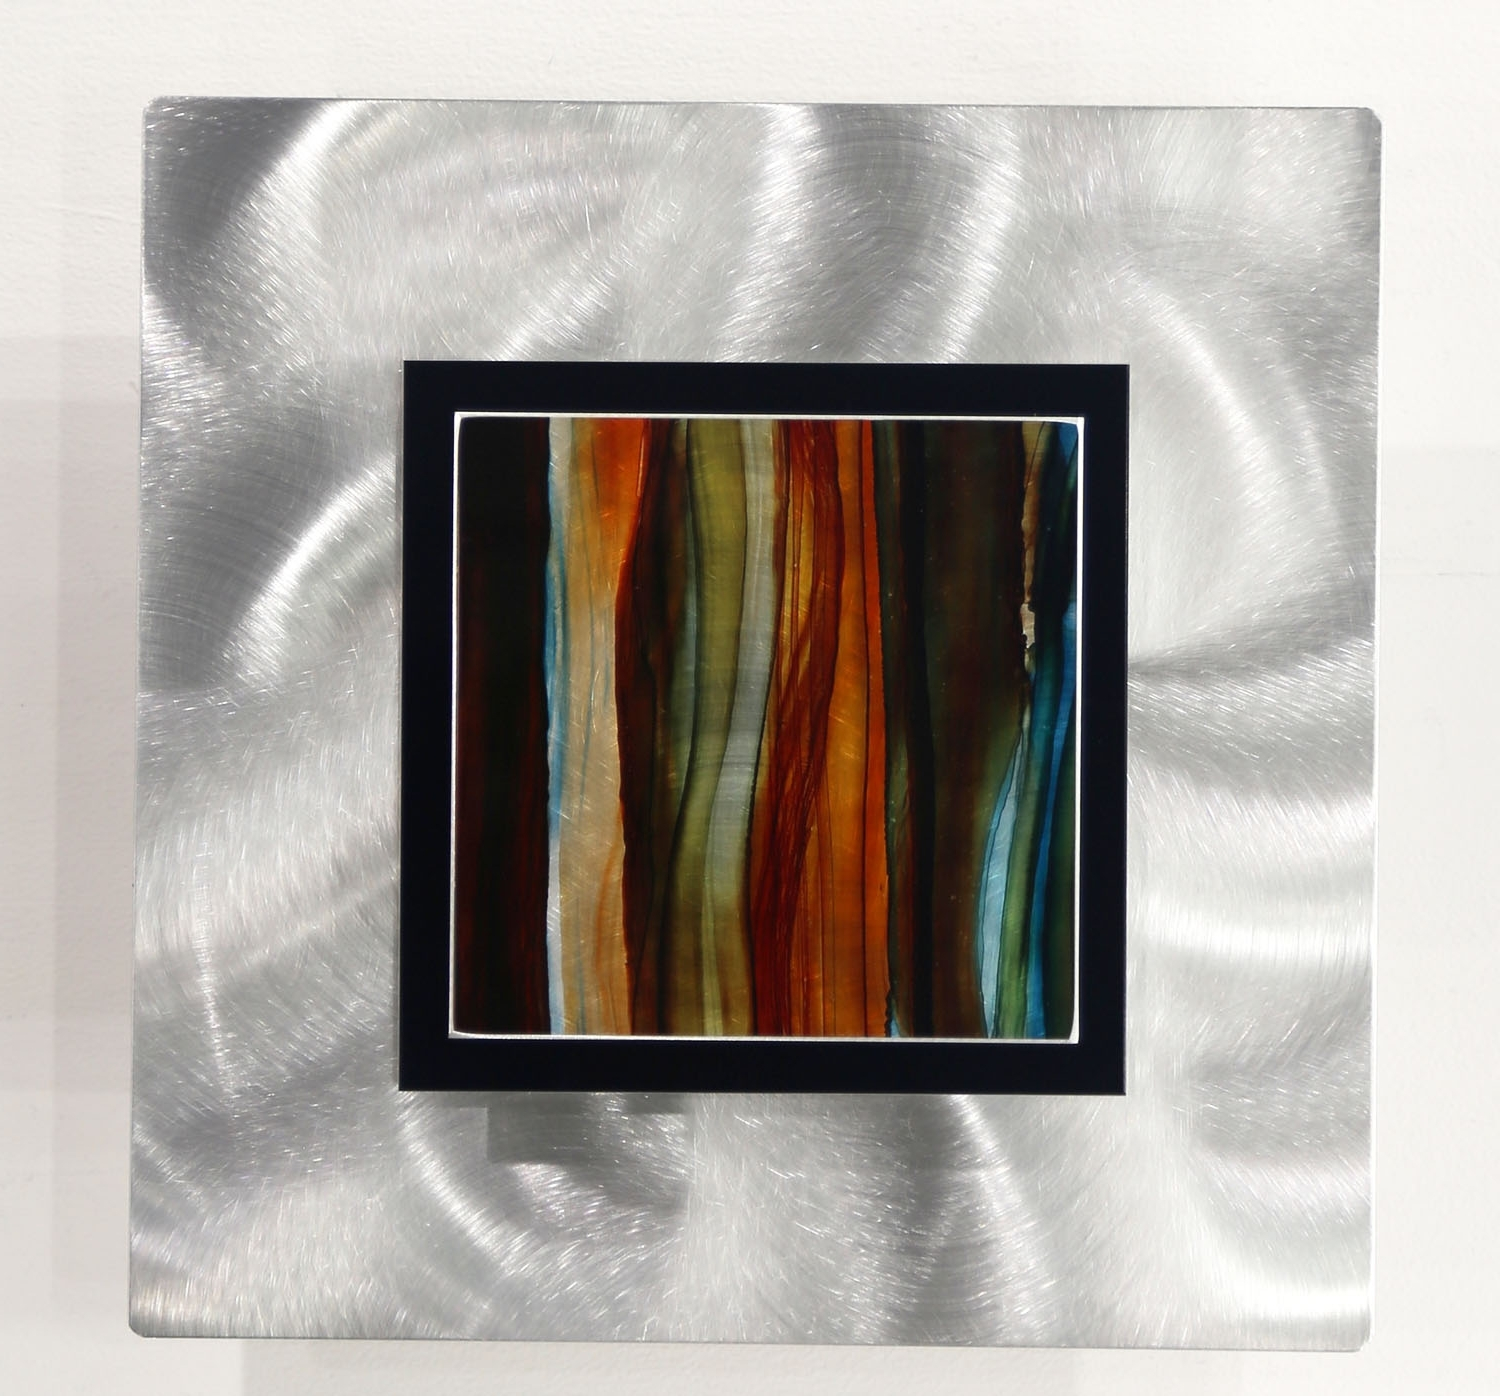 Oj 544Jon Allen – Contemporary Metal Wall Art Accent With Regard To Current Earth Tones Wall Accents (View 12 of 15)